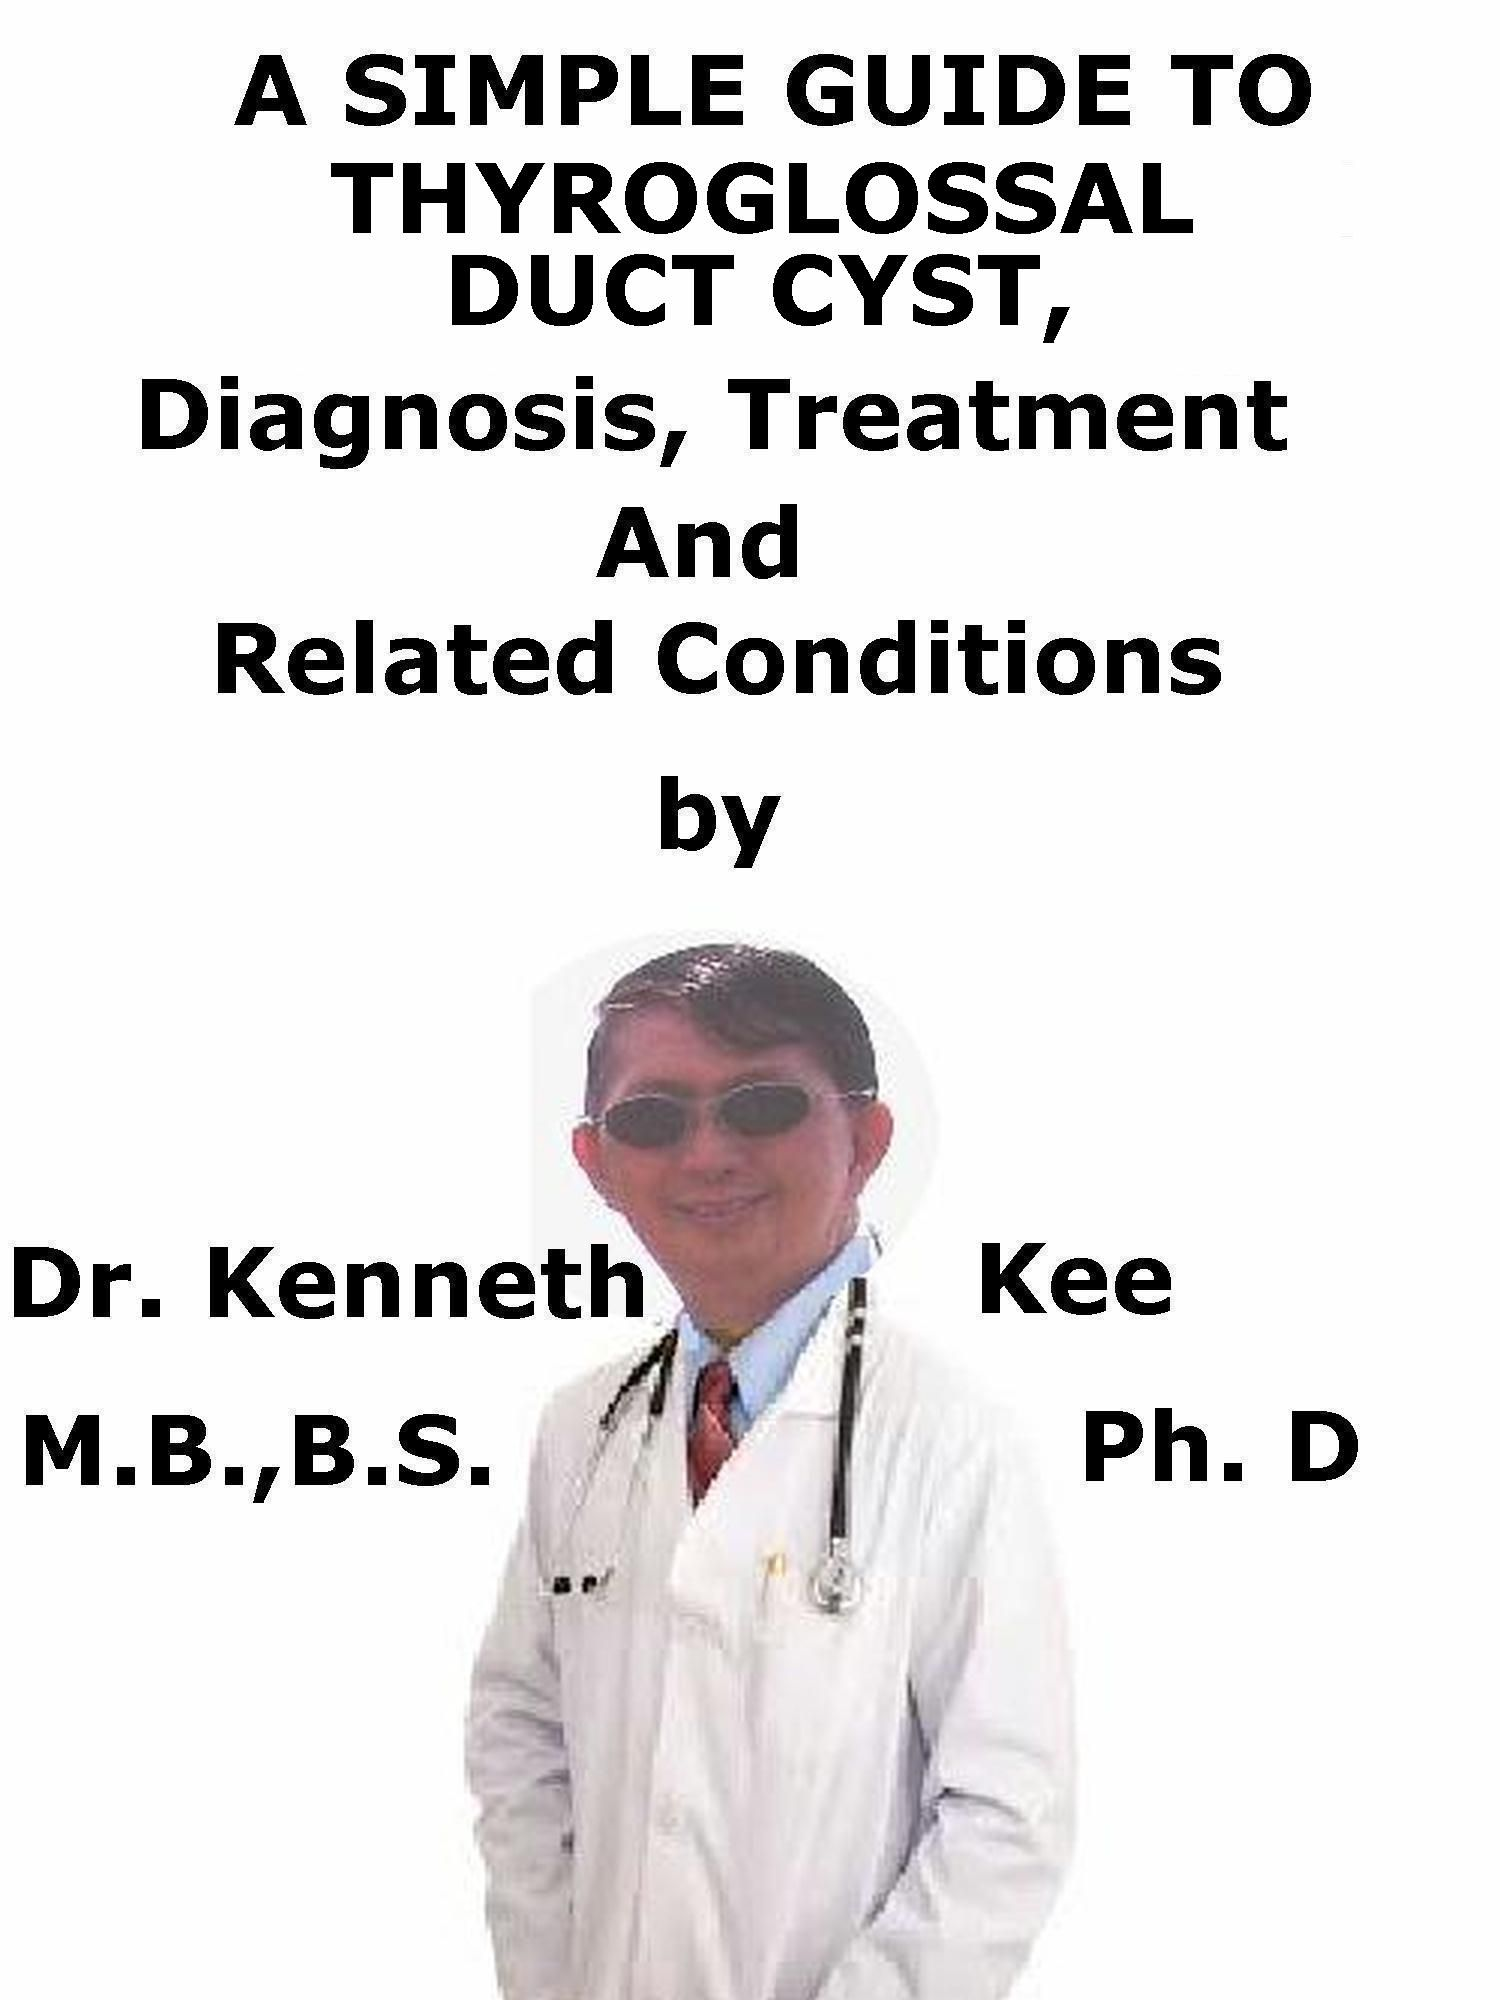 A Simple Guide To Thyroglossal Duct Cyst, Diagnosis, Treatment And ...